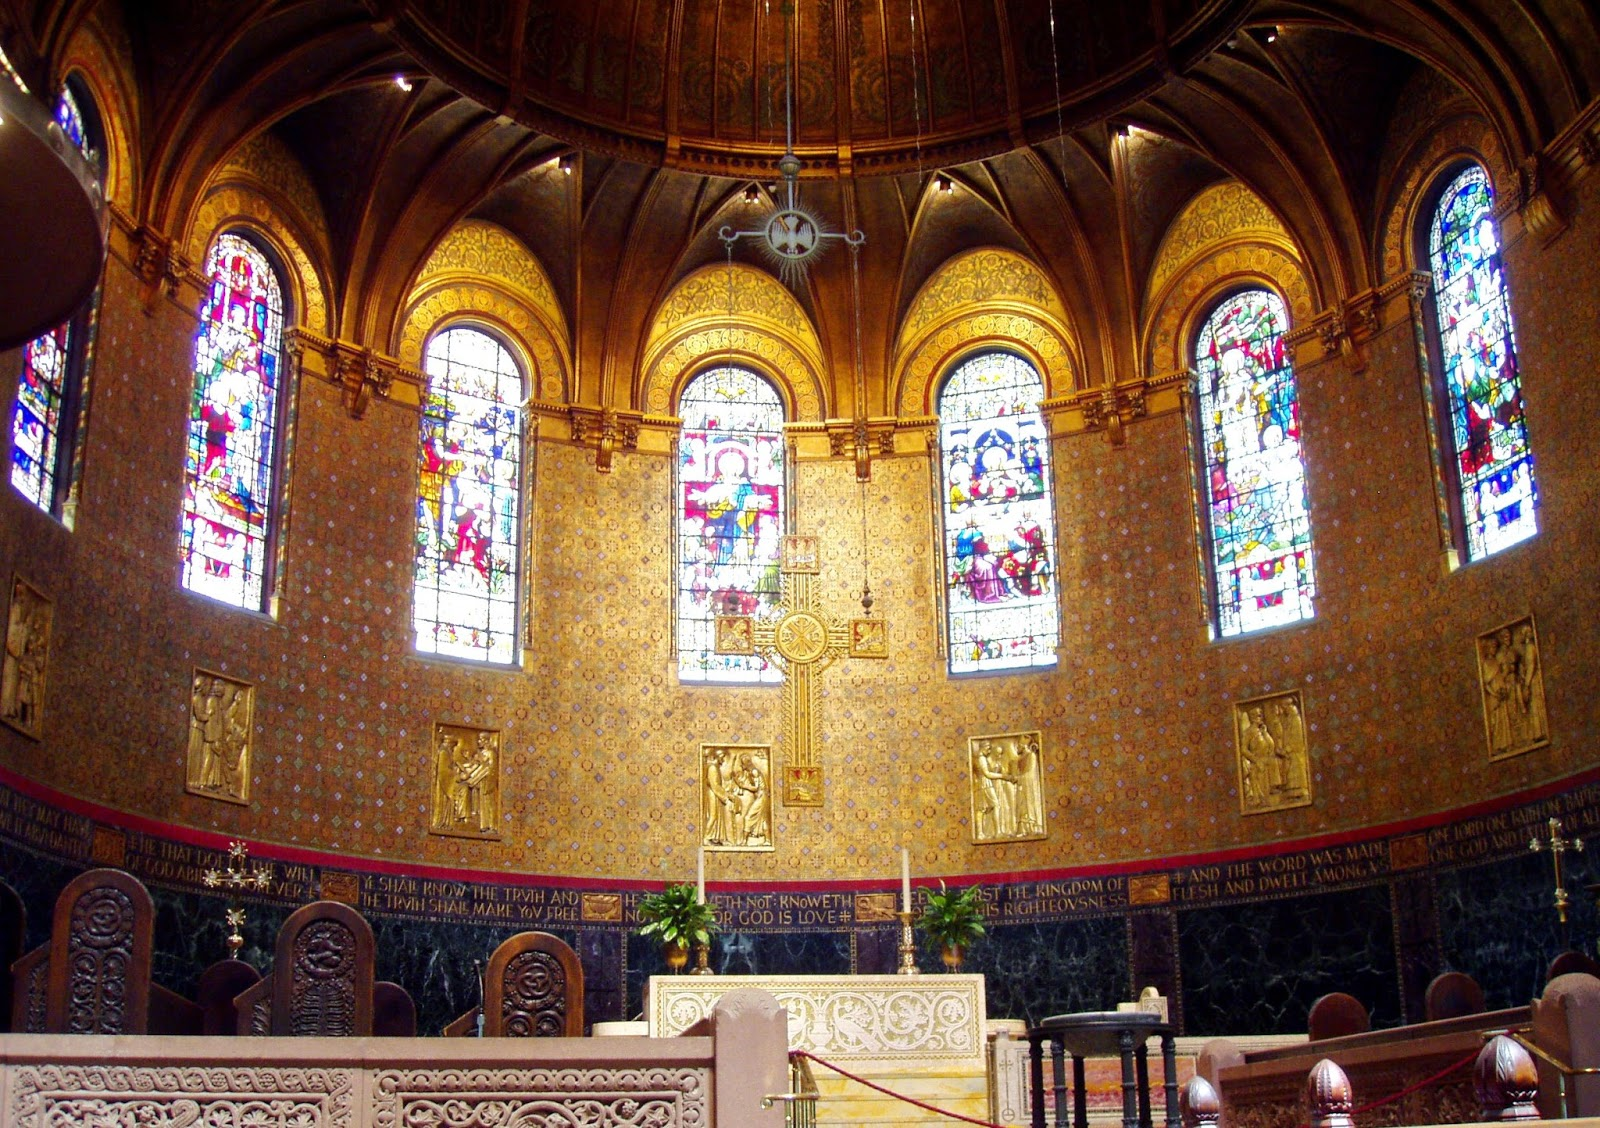 Trinity Church Boston Massachusetts most famous buildings in united states architecture (1)